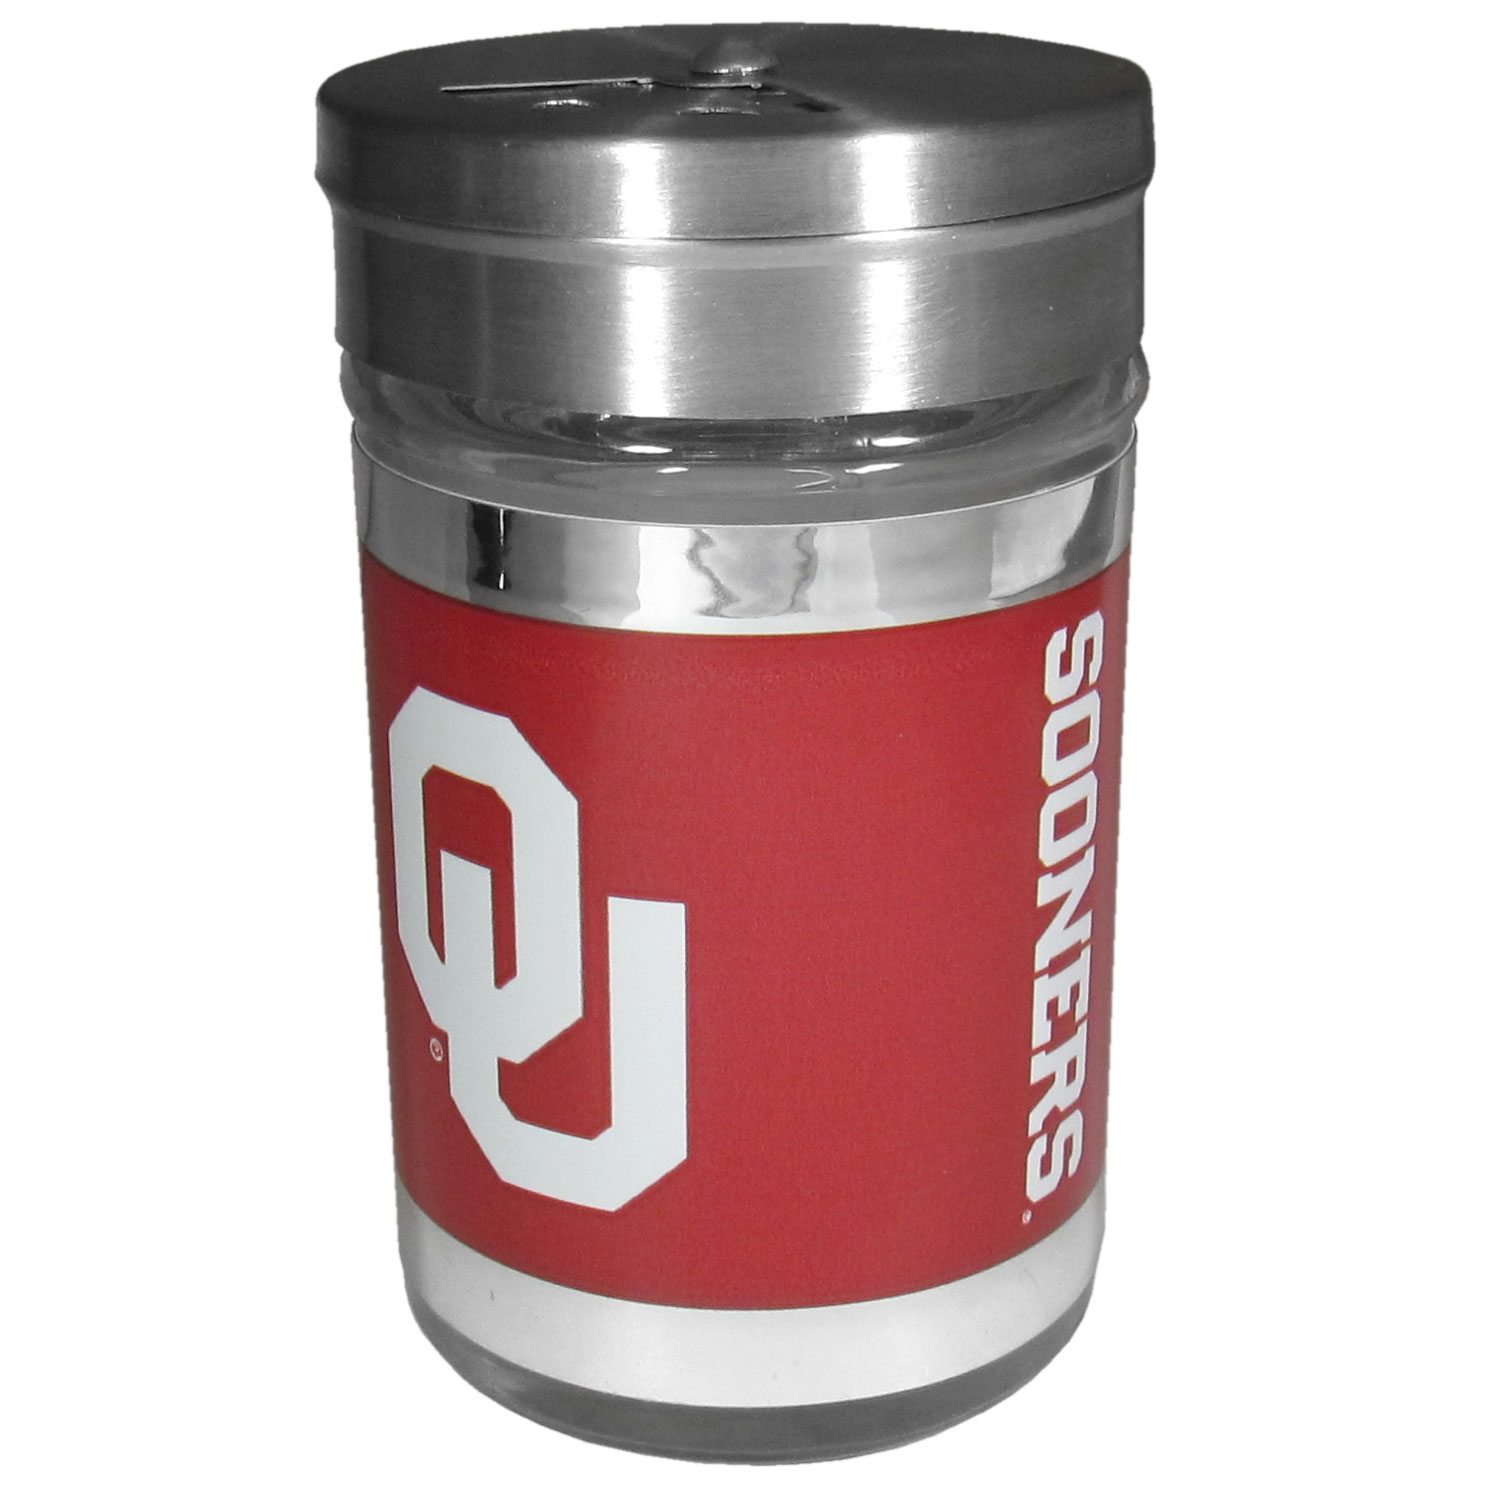 Oklahoma Sooners Tailgater Season Shakers - Spice it up with our Oklahoma Sooners tailgater season shakers! This compact shaker is 2 inch tall with a twist top that closes off the holes at the top making it perfect for travel preventing those messy spills. The shaker has wide holes perfect for keeping your pepper seeds or cheese toppings. The bright team graphics will make you the envy of the other fans while you are grilling up your tailgating goodies.